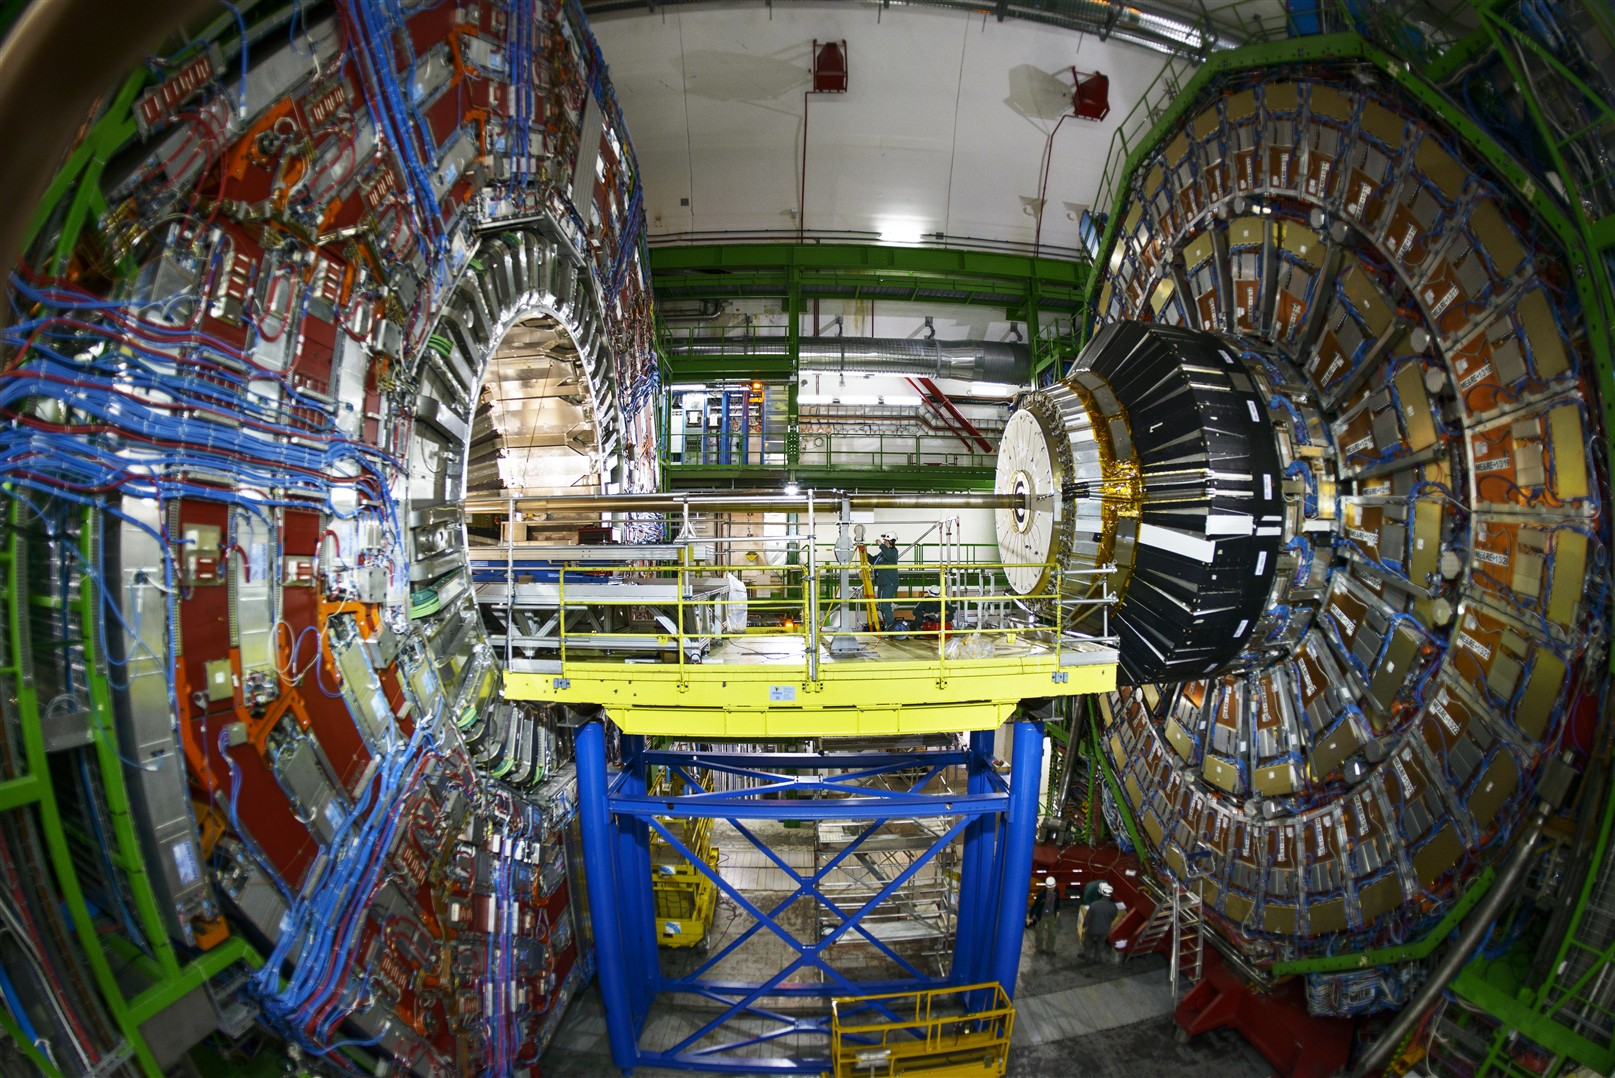 Maintenance work underway at the CMS detector, the largest of the five that straddle the LHC. Credit: CERN